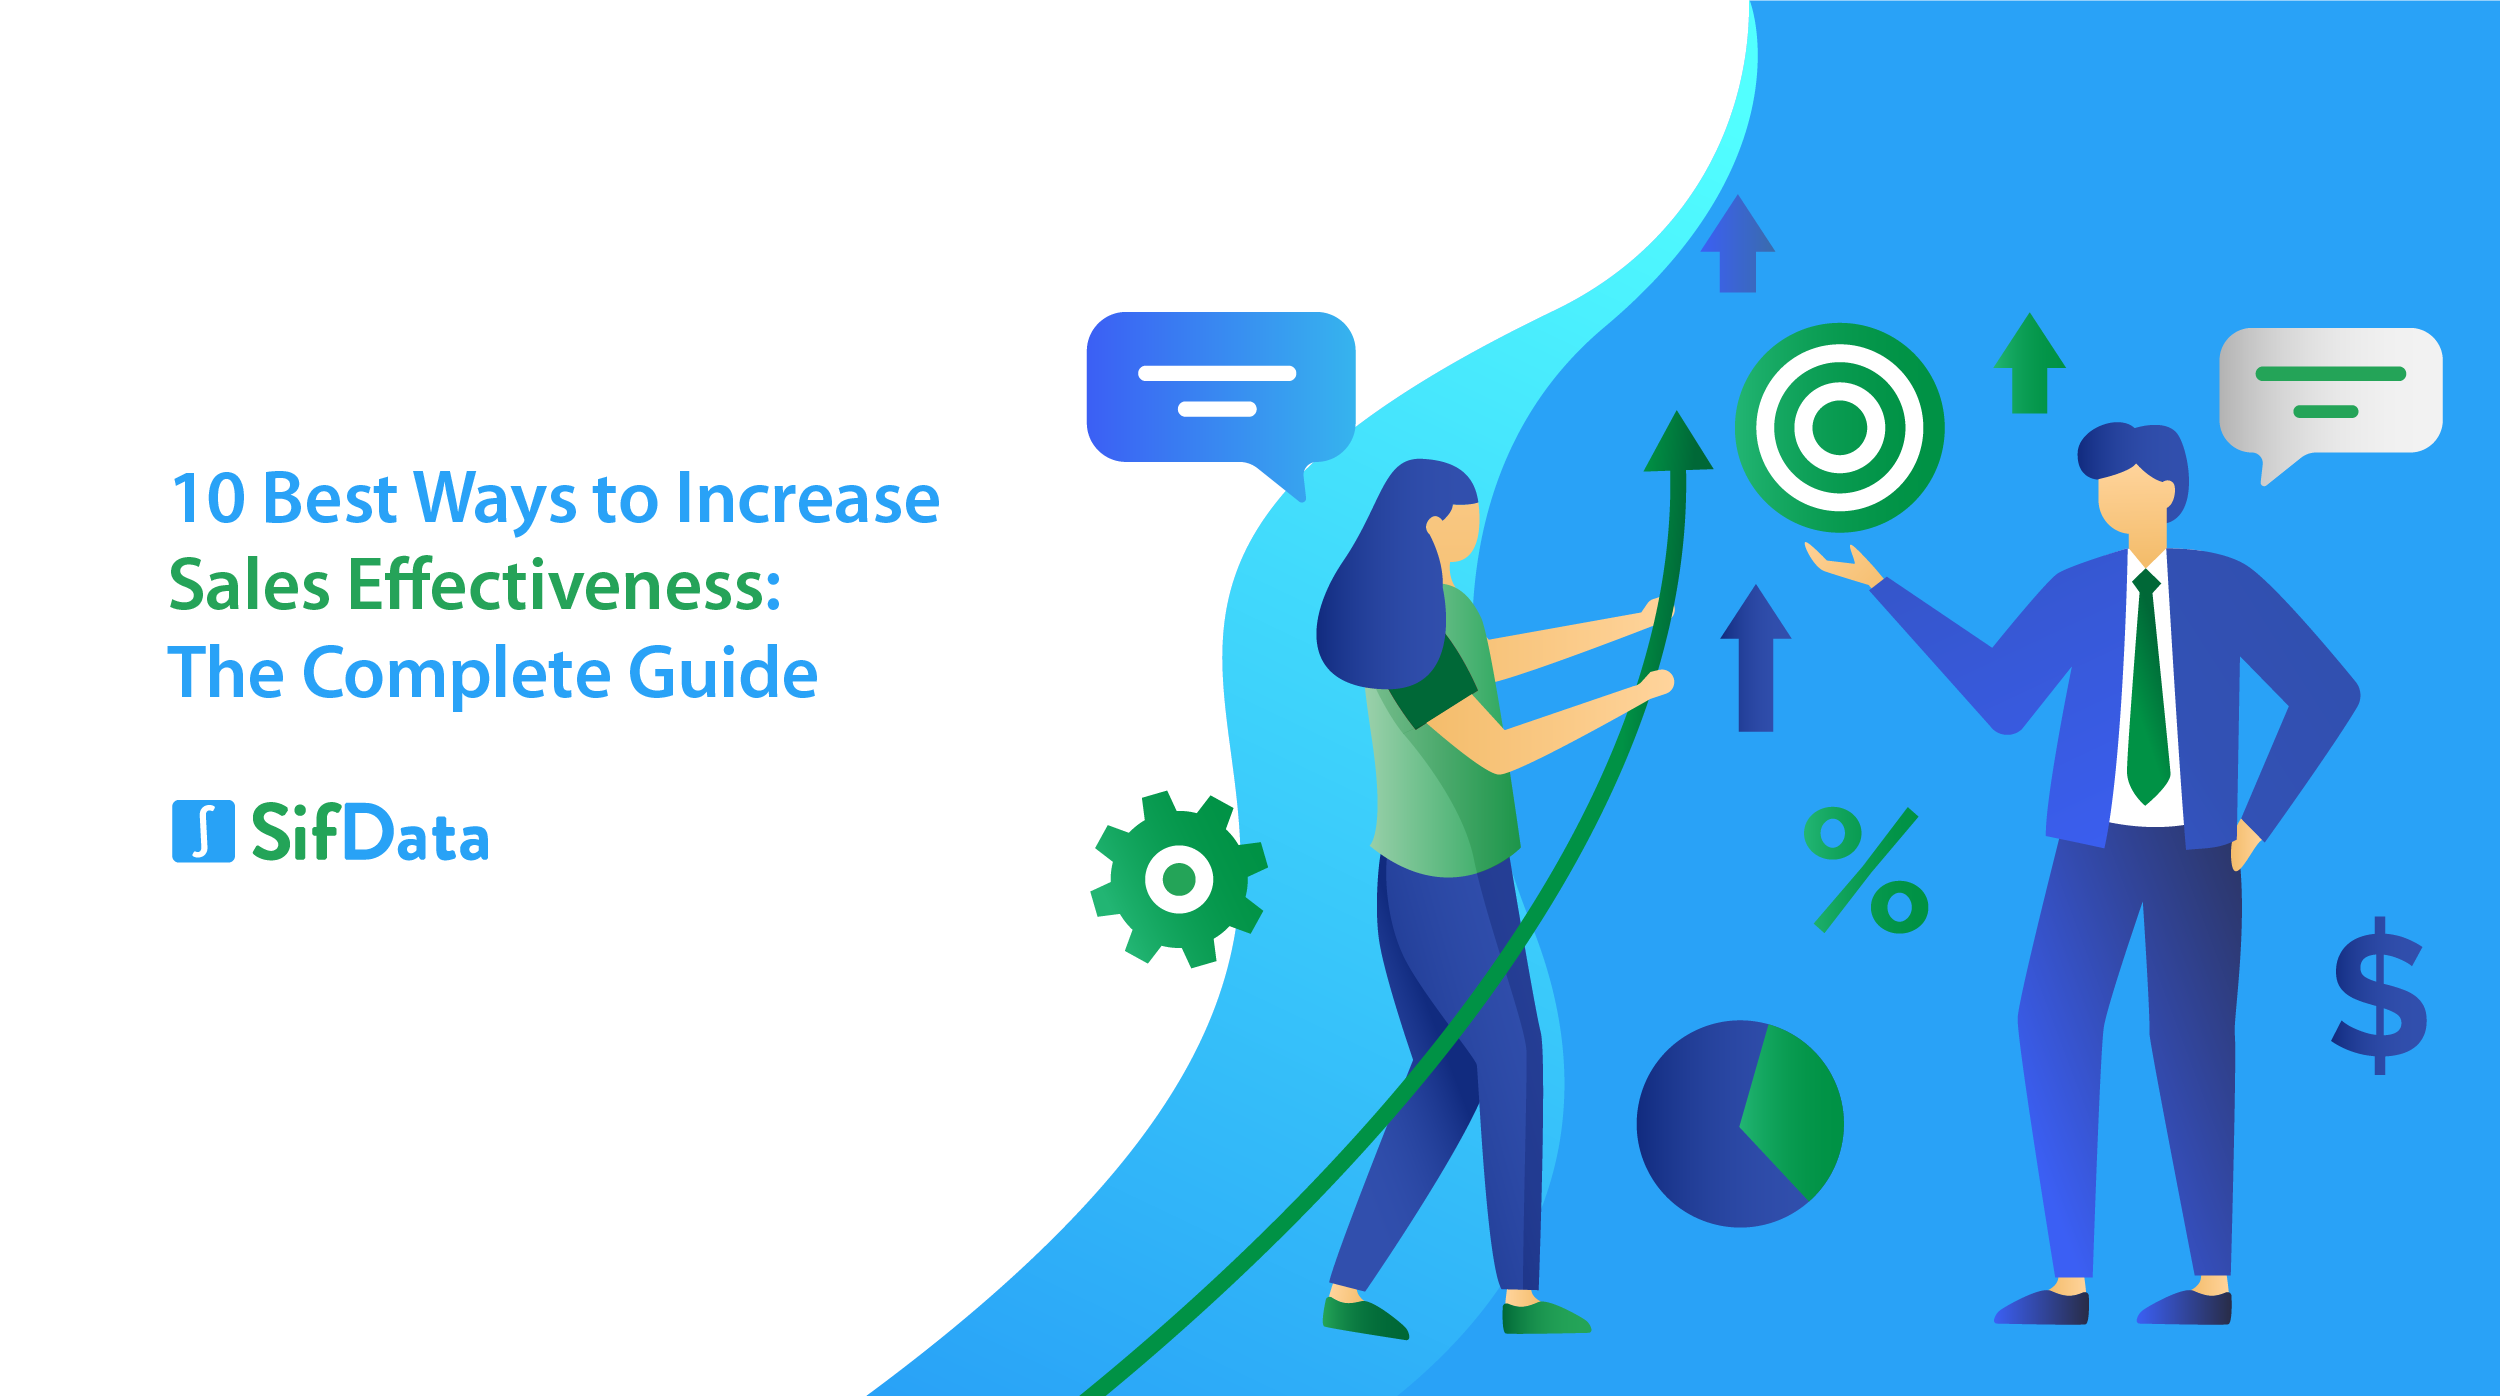 10 BEST WAYS TO INCREASE SALES EFFECTIVENESS: THE COMPLETE GUIDE